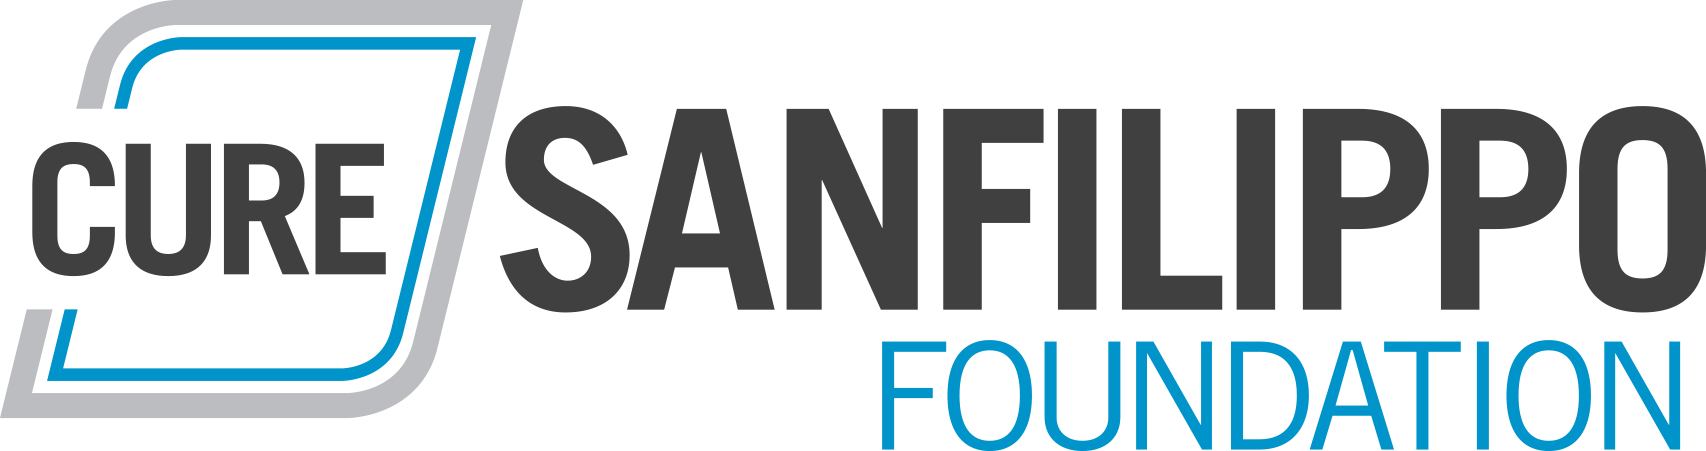 Cure Sanfilippo Foundation